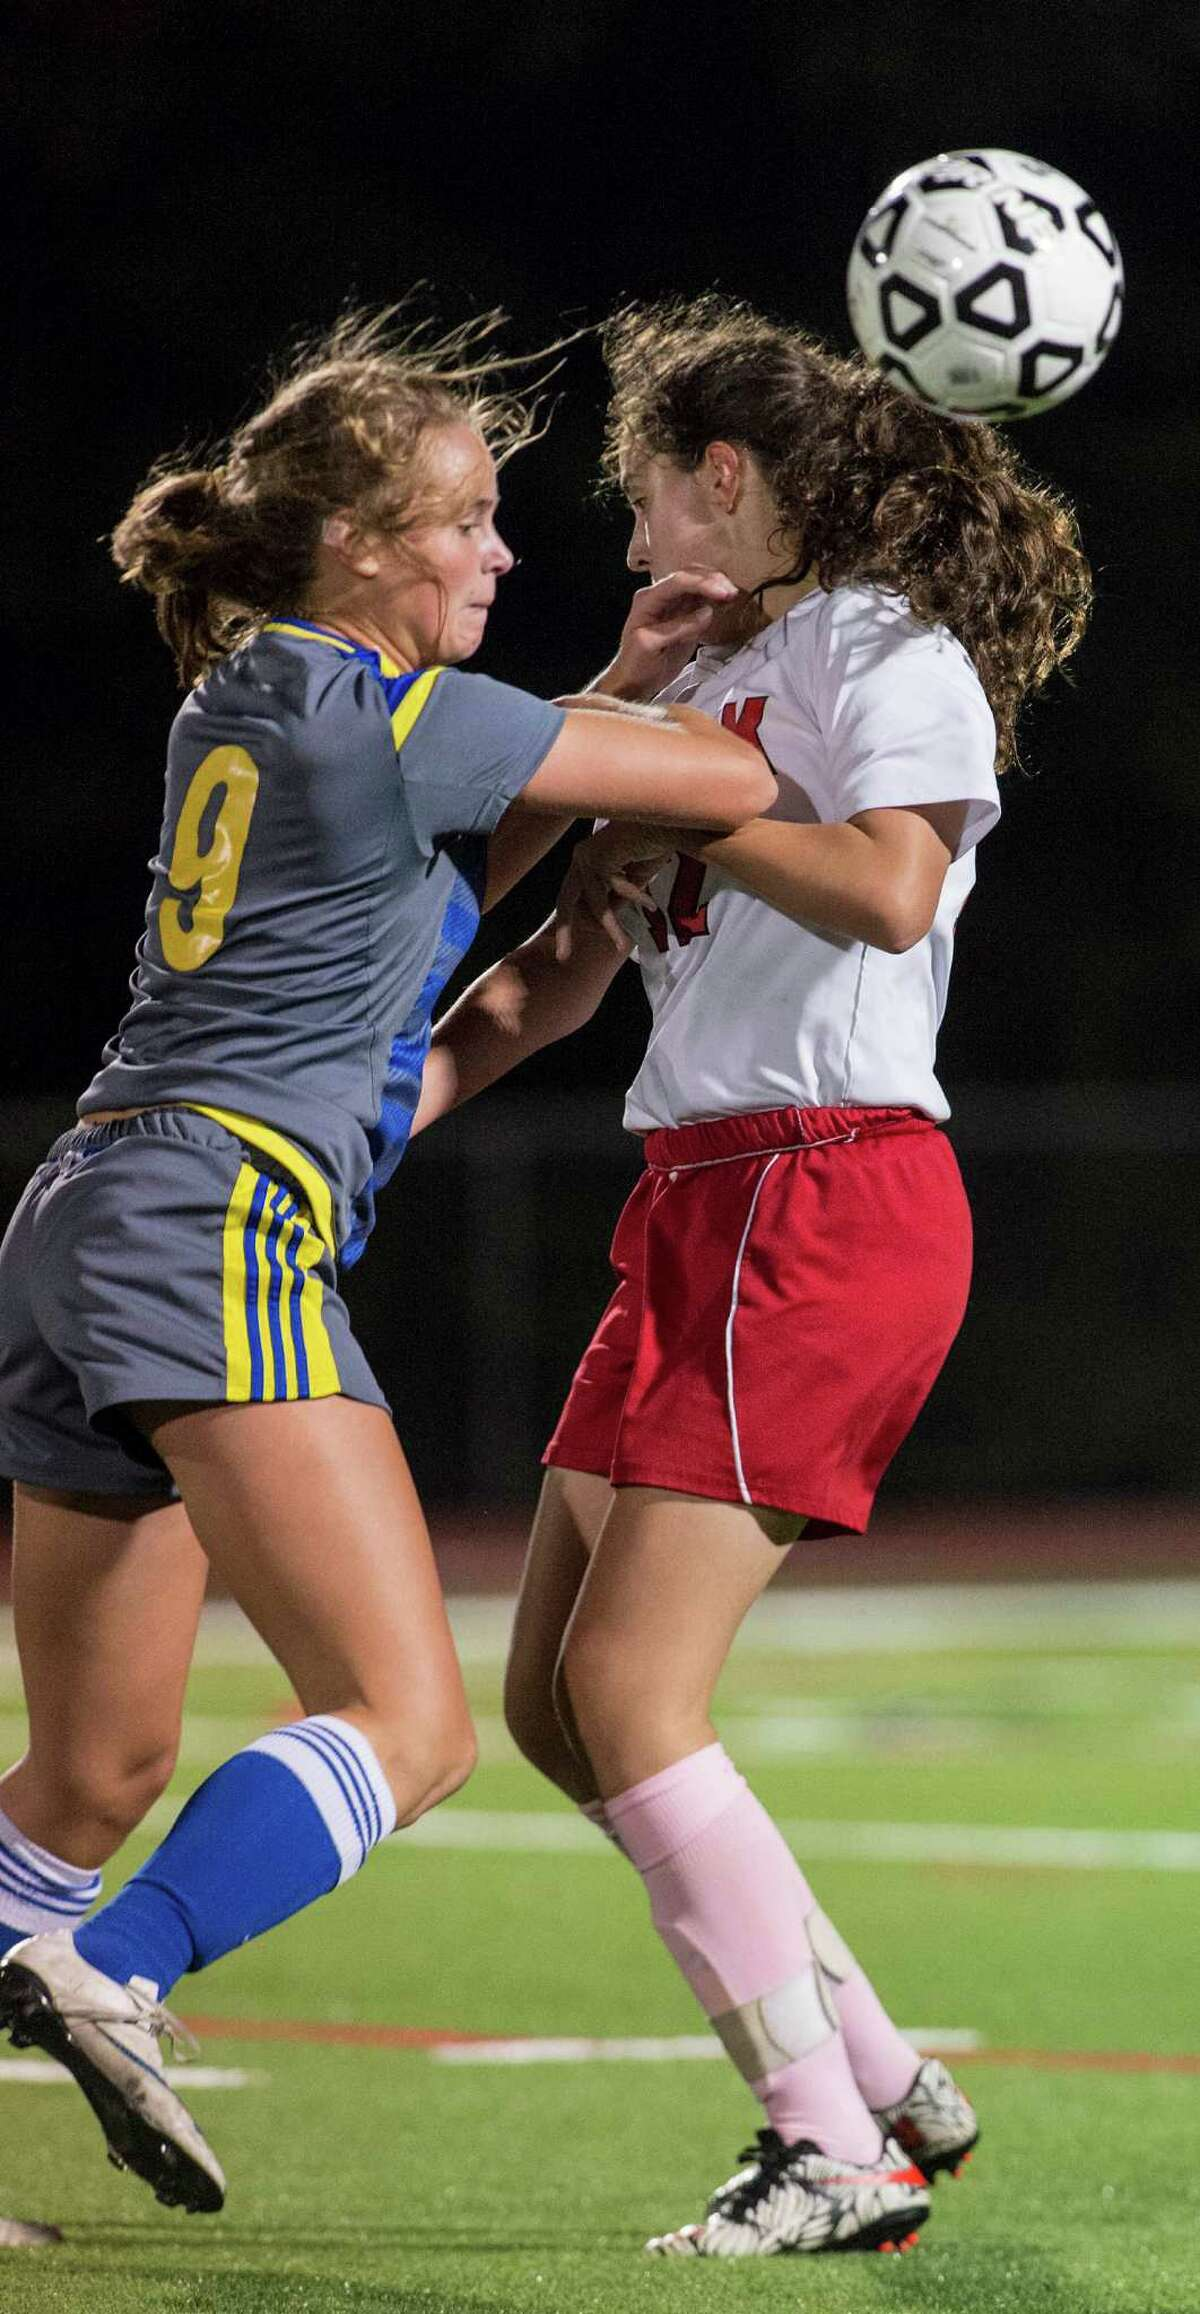 Newtown High School against Masuk High School during a girls soccer game played at Masuk High School, Monroe, CT on Friday, October 7, 2016.